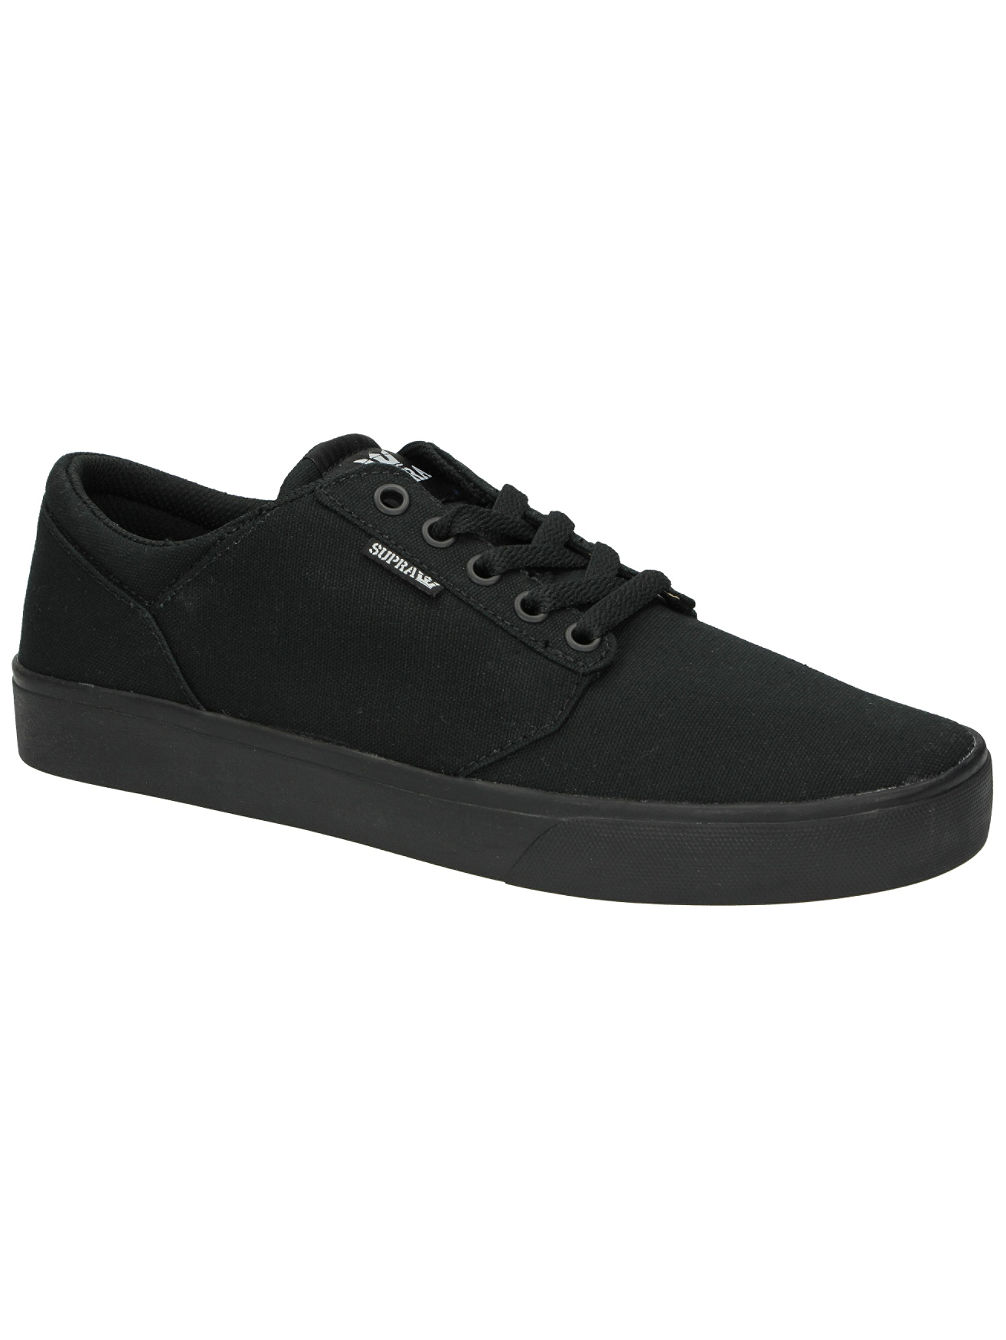 Yorek Low Sneakers